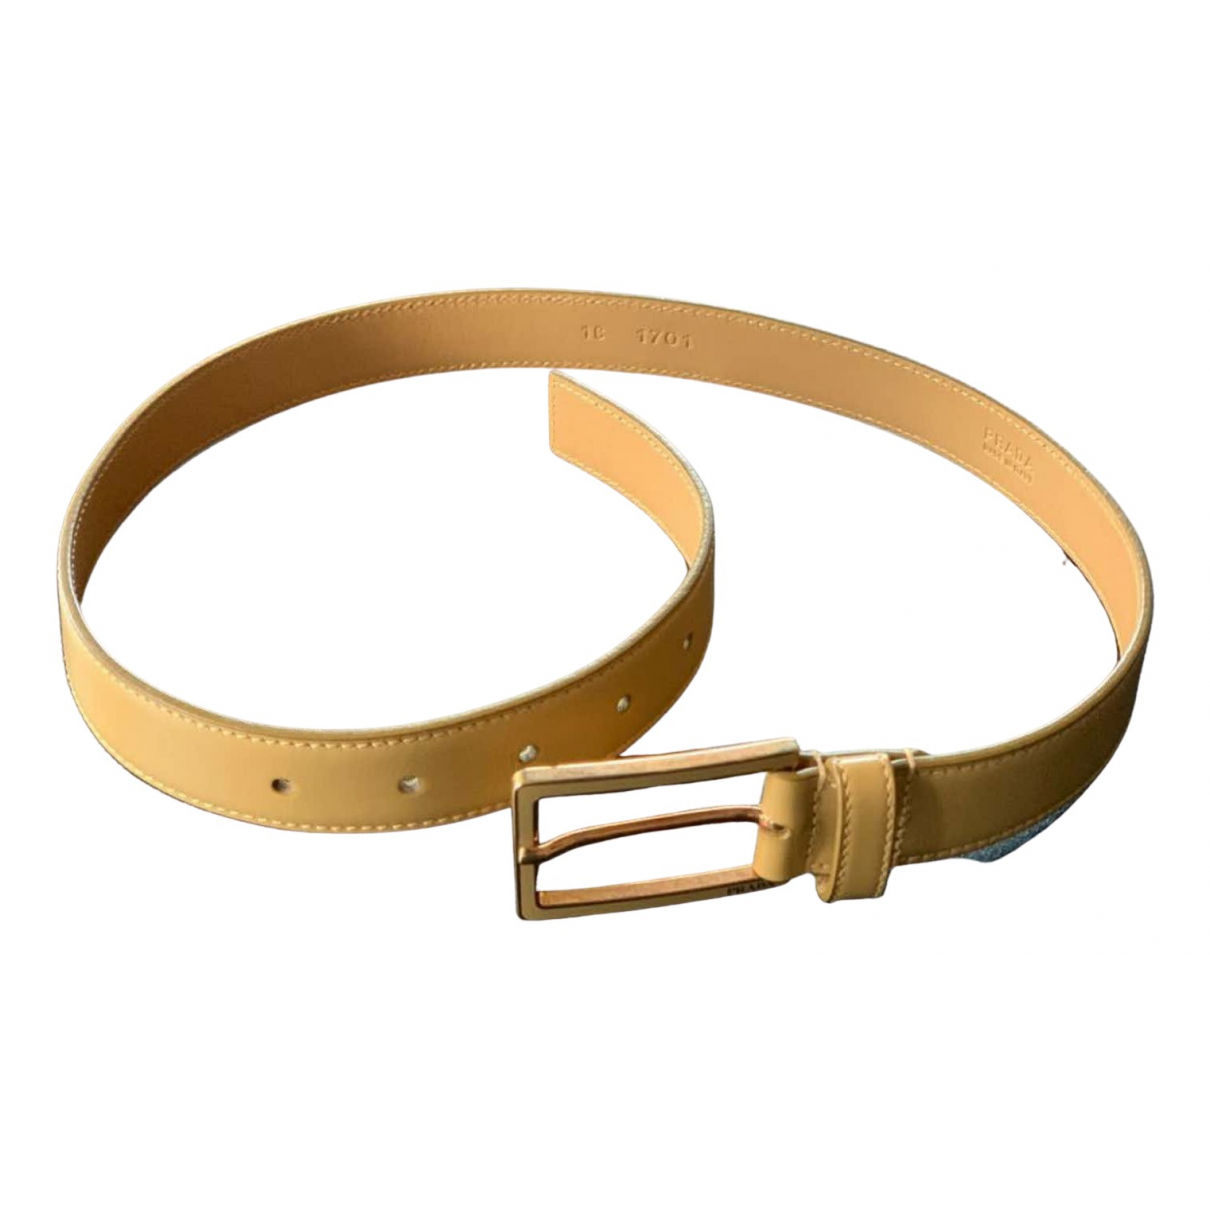 Prada \N Beige Leather belt for Women 70 cm